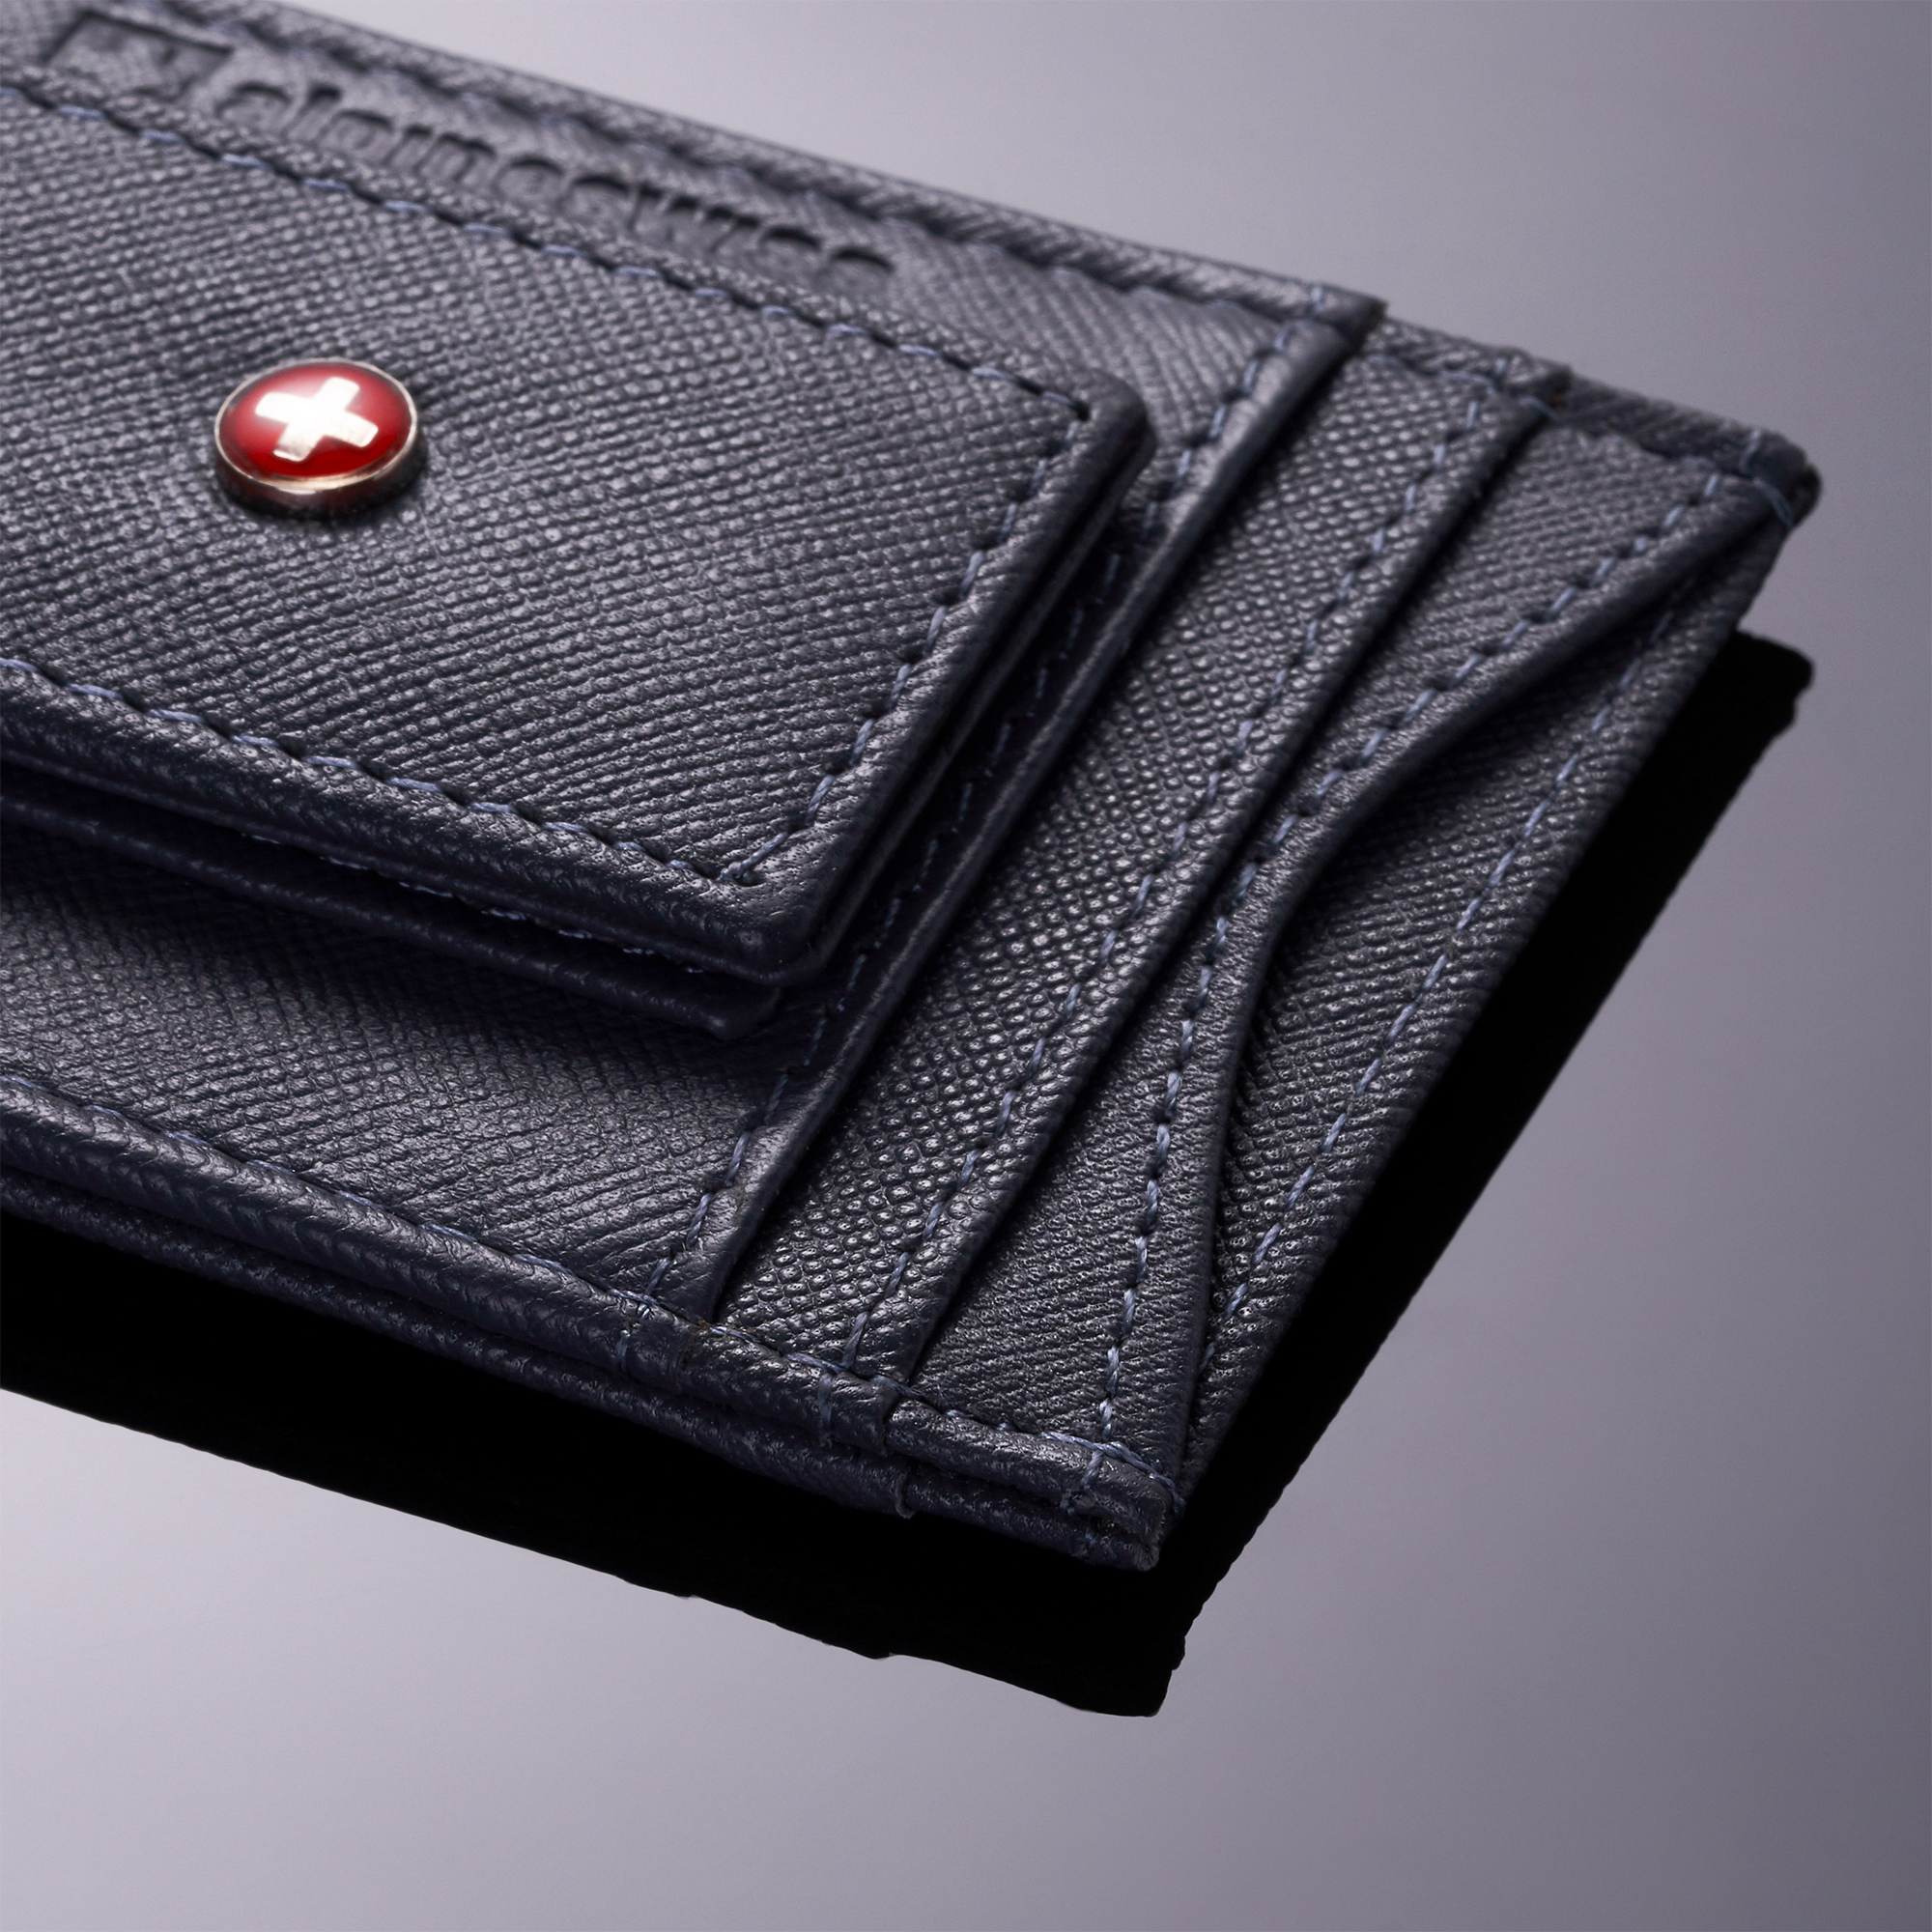 AlpineSwiss-Mens-Leather-Money-Clip-Magnet-Front-Pocket-Wallet-Slim-ID-Card-Case thumbnail 61